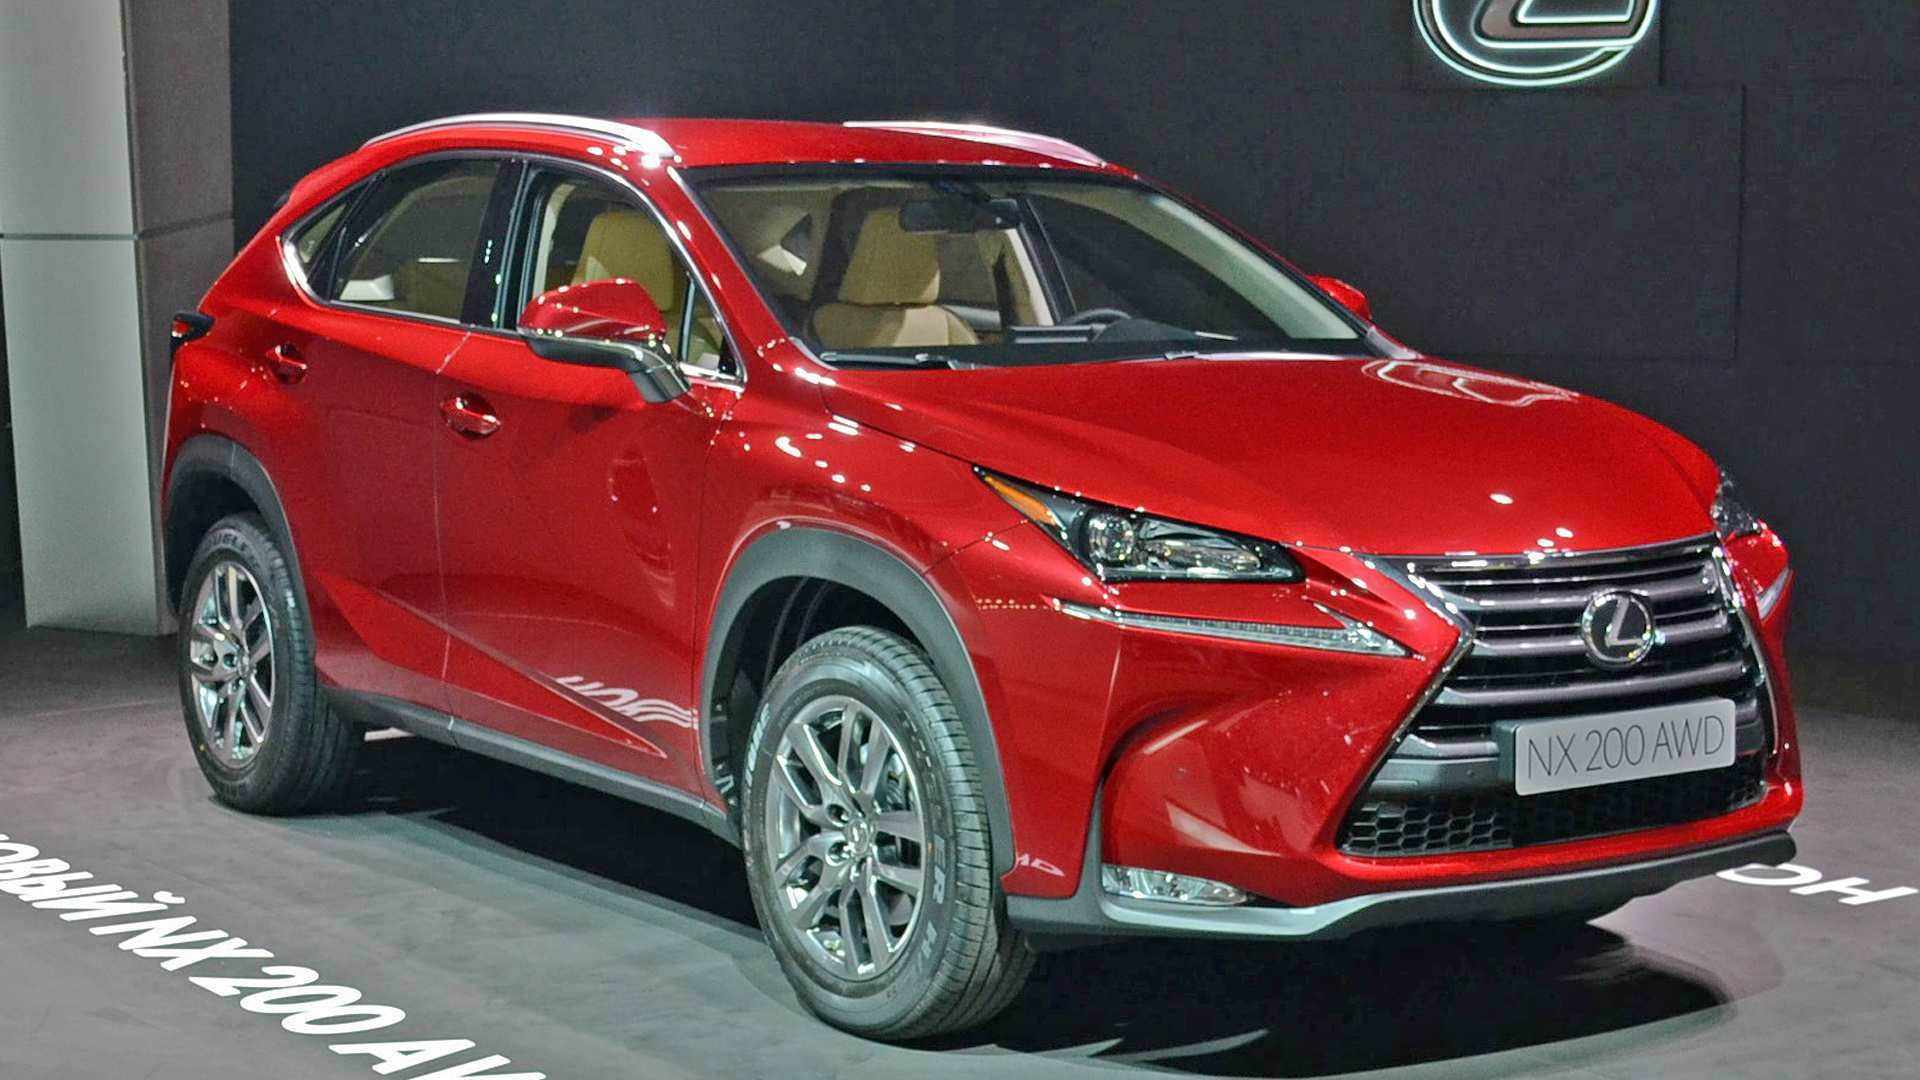 78 Gallery of 2019 Lexus Nx200 History with 2019 Lexus Nx200